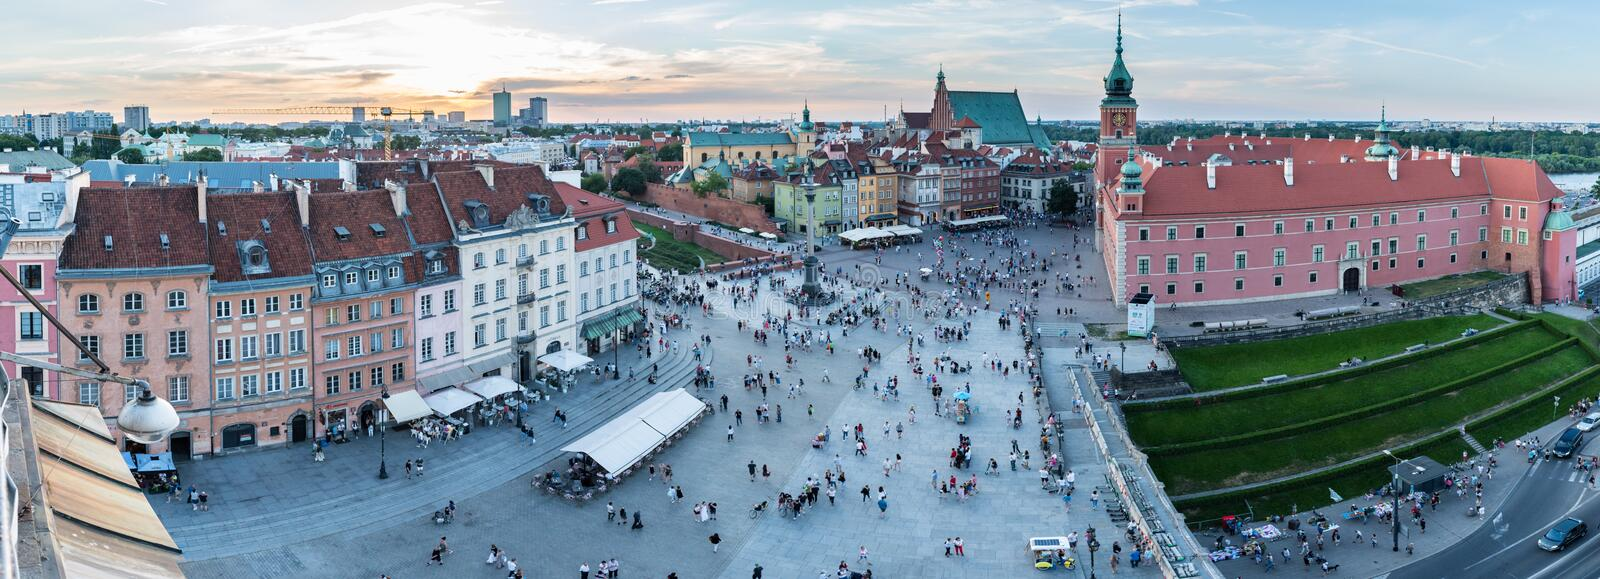 Panoramic view of Castle Square in Warsaw, Poland, as the sun begins to set over the Old Town stock photography